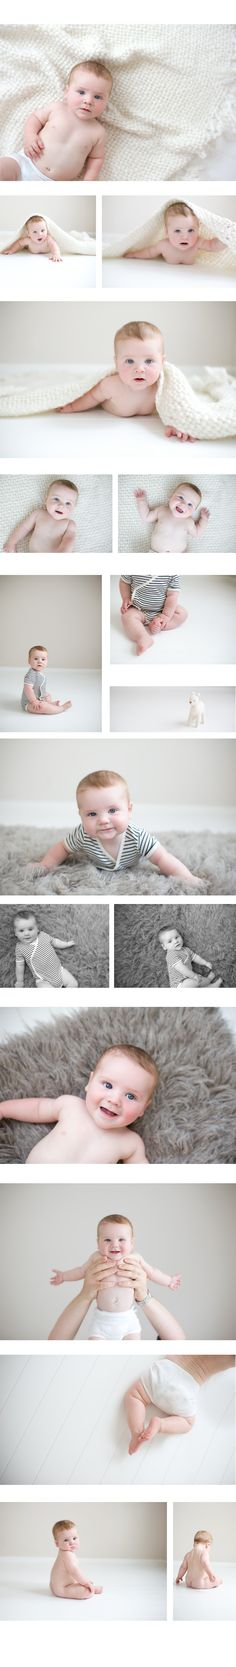 Photos by the awesome Lane Proffitt Photography!